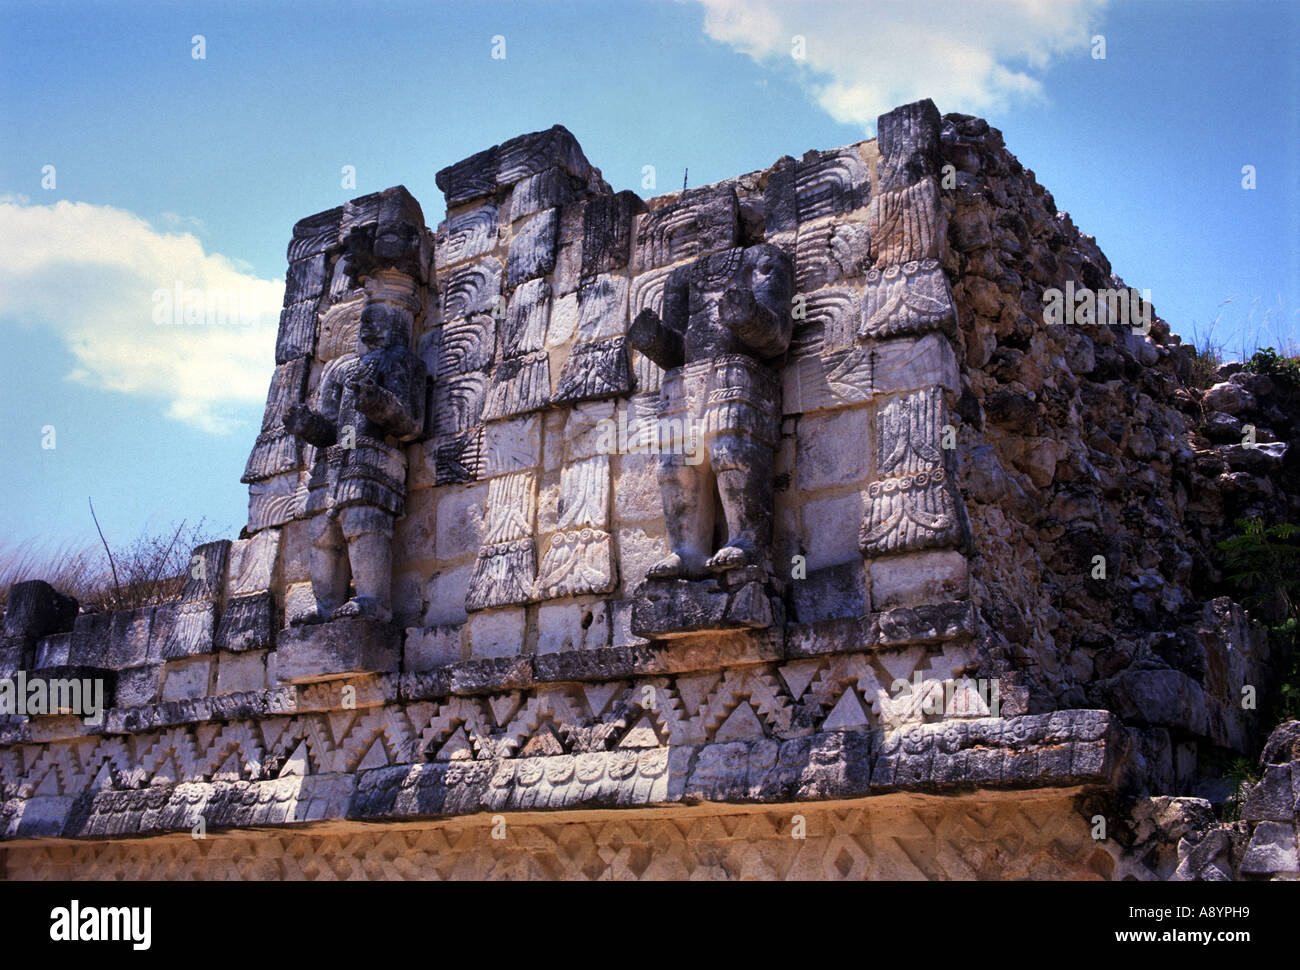 TWO ATLANTEAN FIGURES ABOVE A DOOR AT THE REAR OF THE PALACE OF THE MASKS AT KABAH YUCATAN MEXICO & TWO ATLANTEAN FIGURES ABOVE A DOOR AT THE REAR OF THE PALACE OF ...